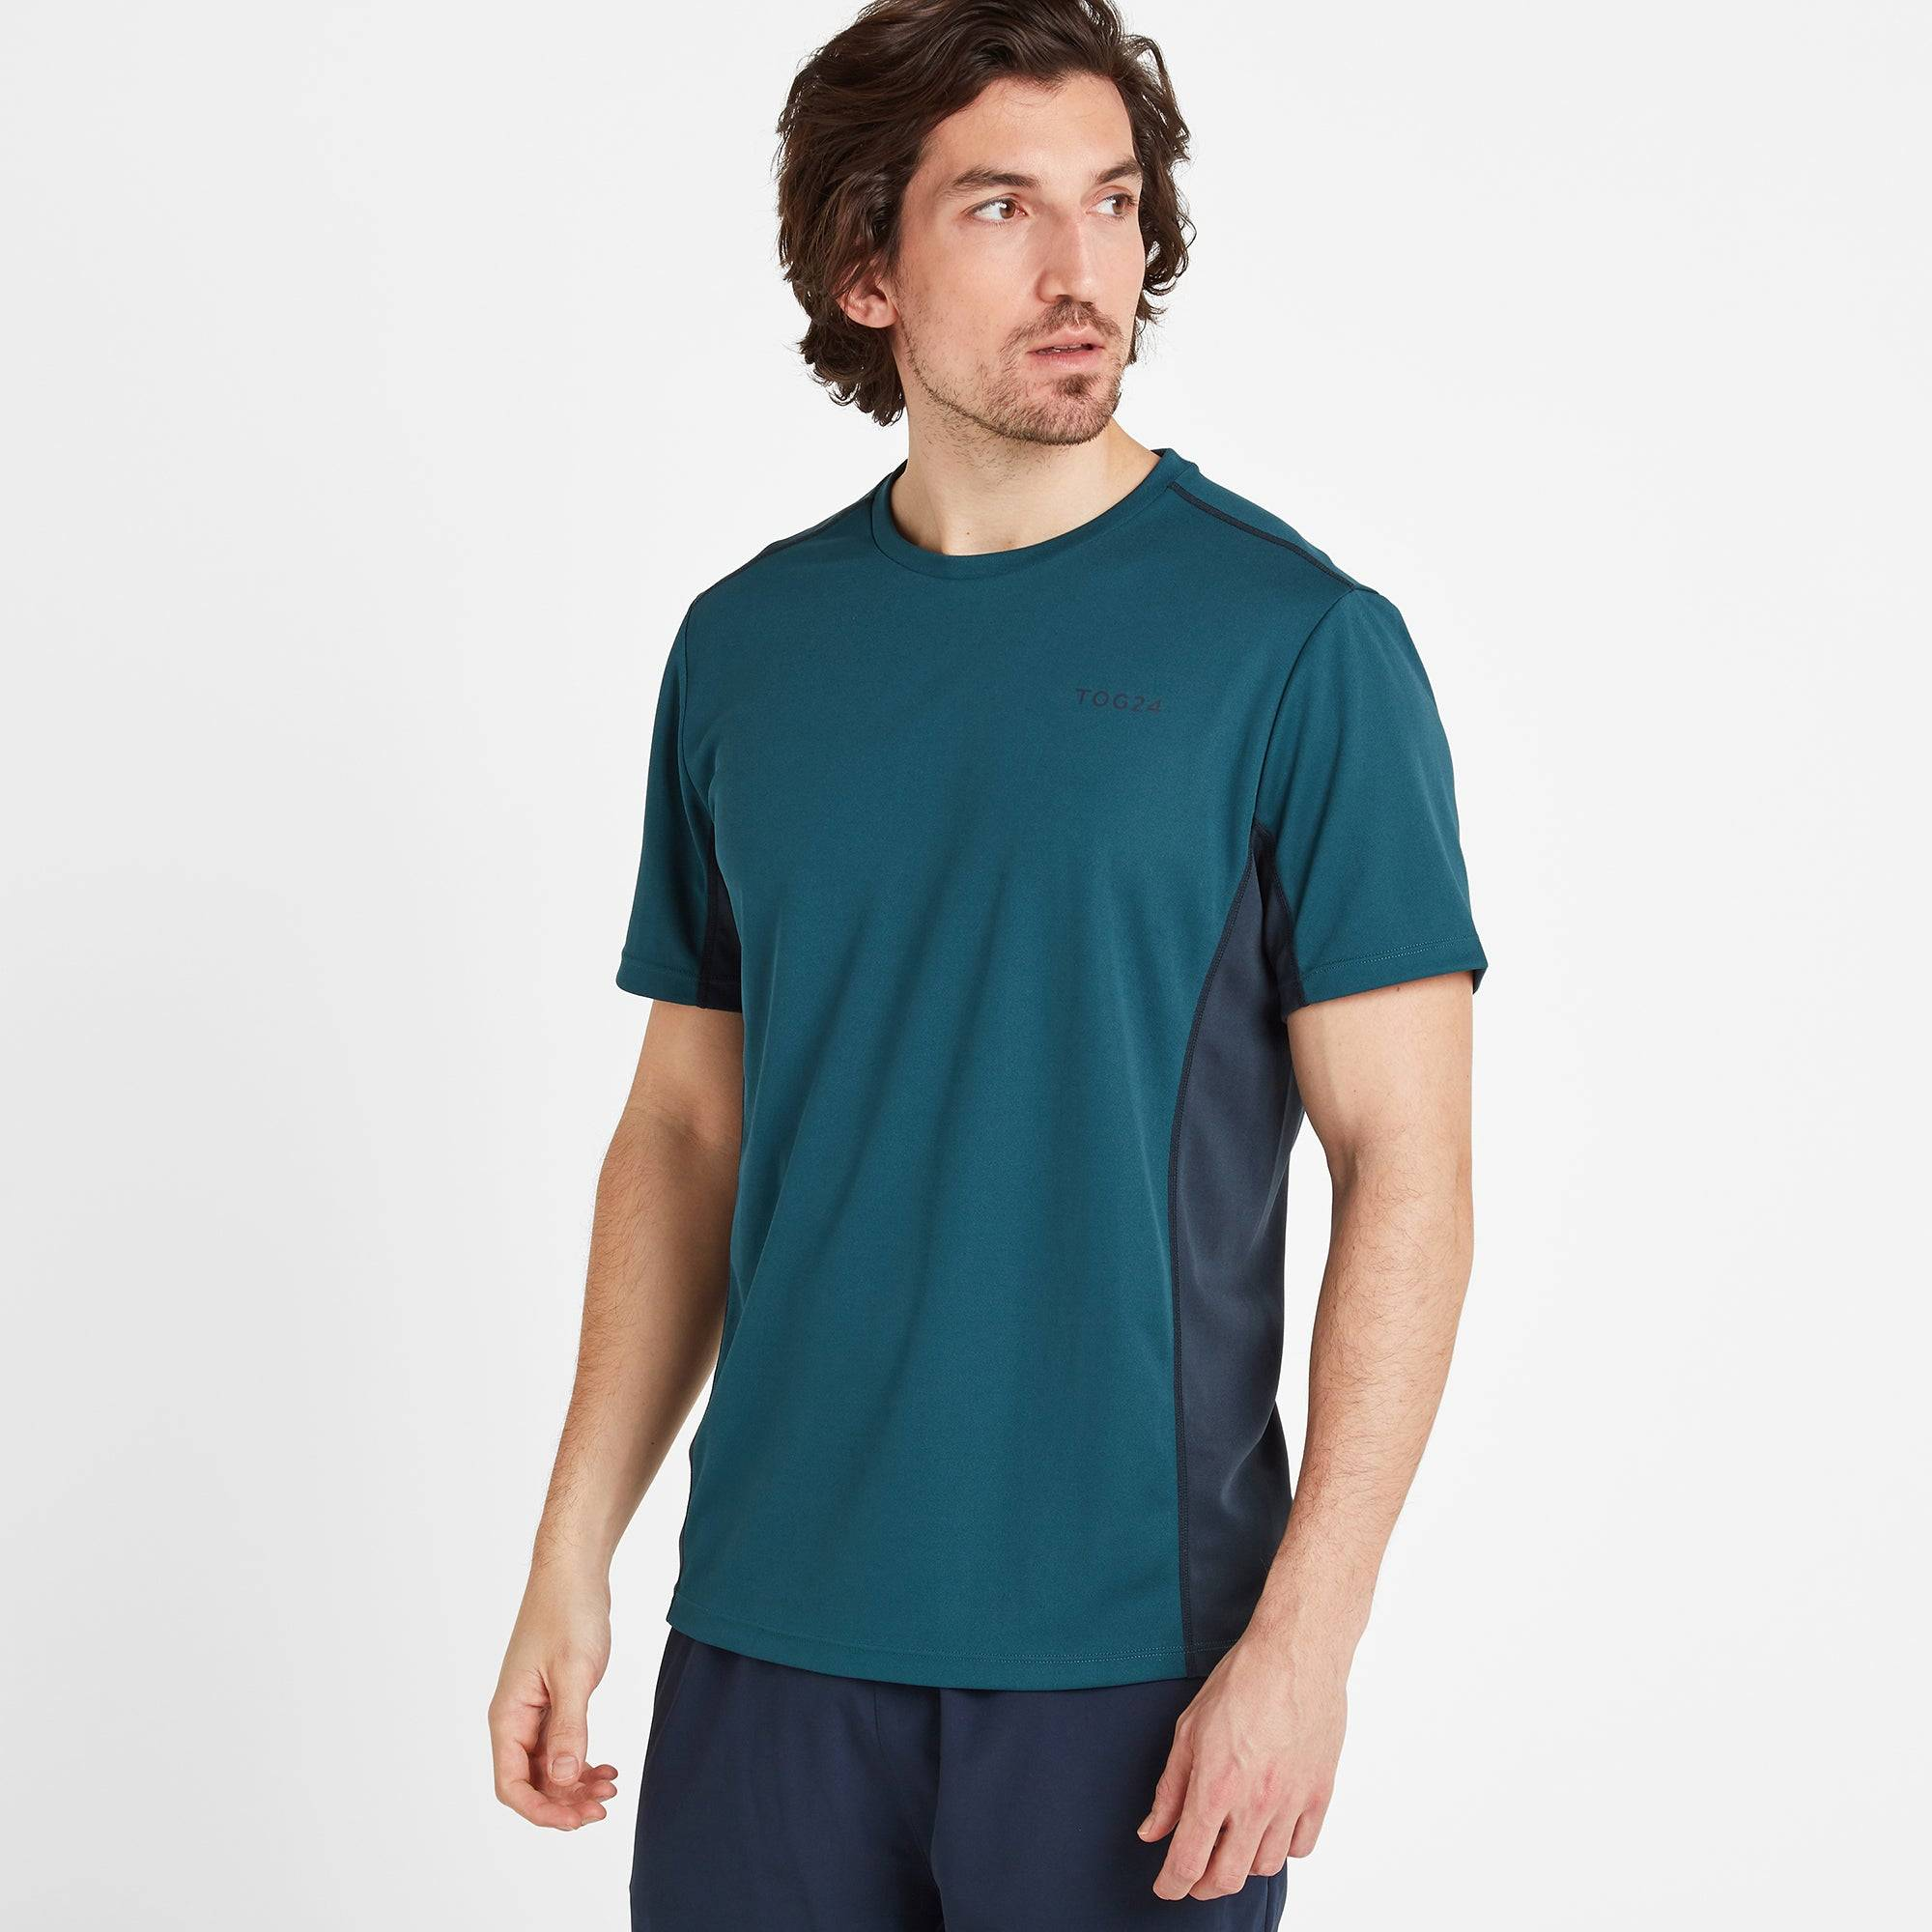 TOG24 Blackwell Mens Tech T-Shirt - Lagoon Blue - L